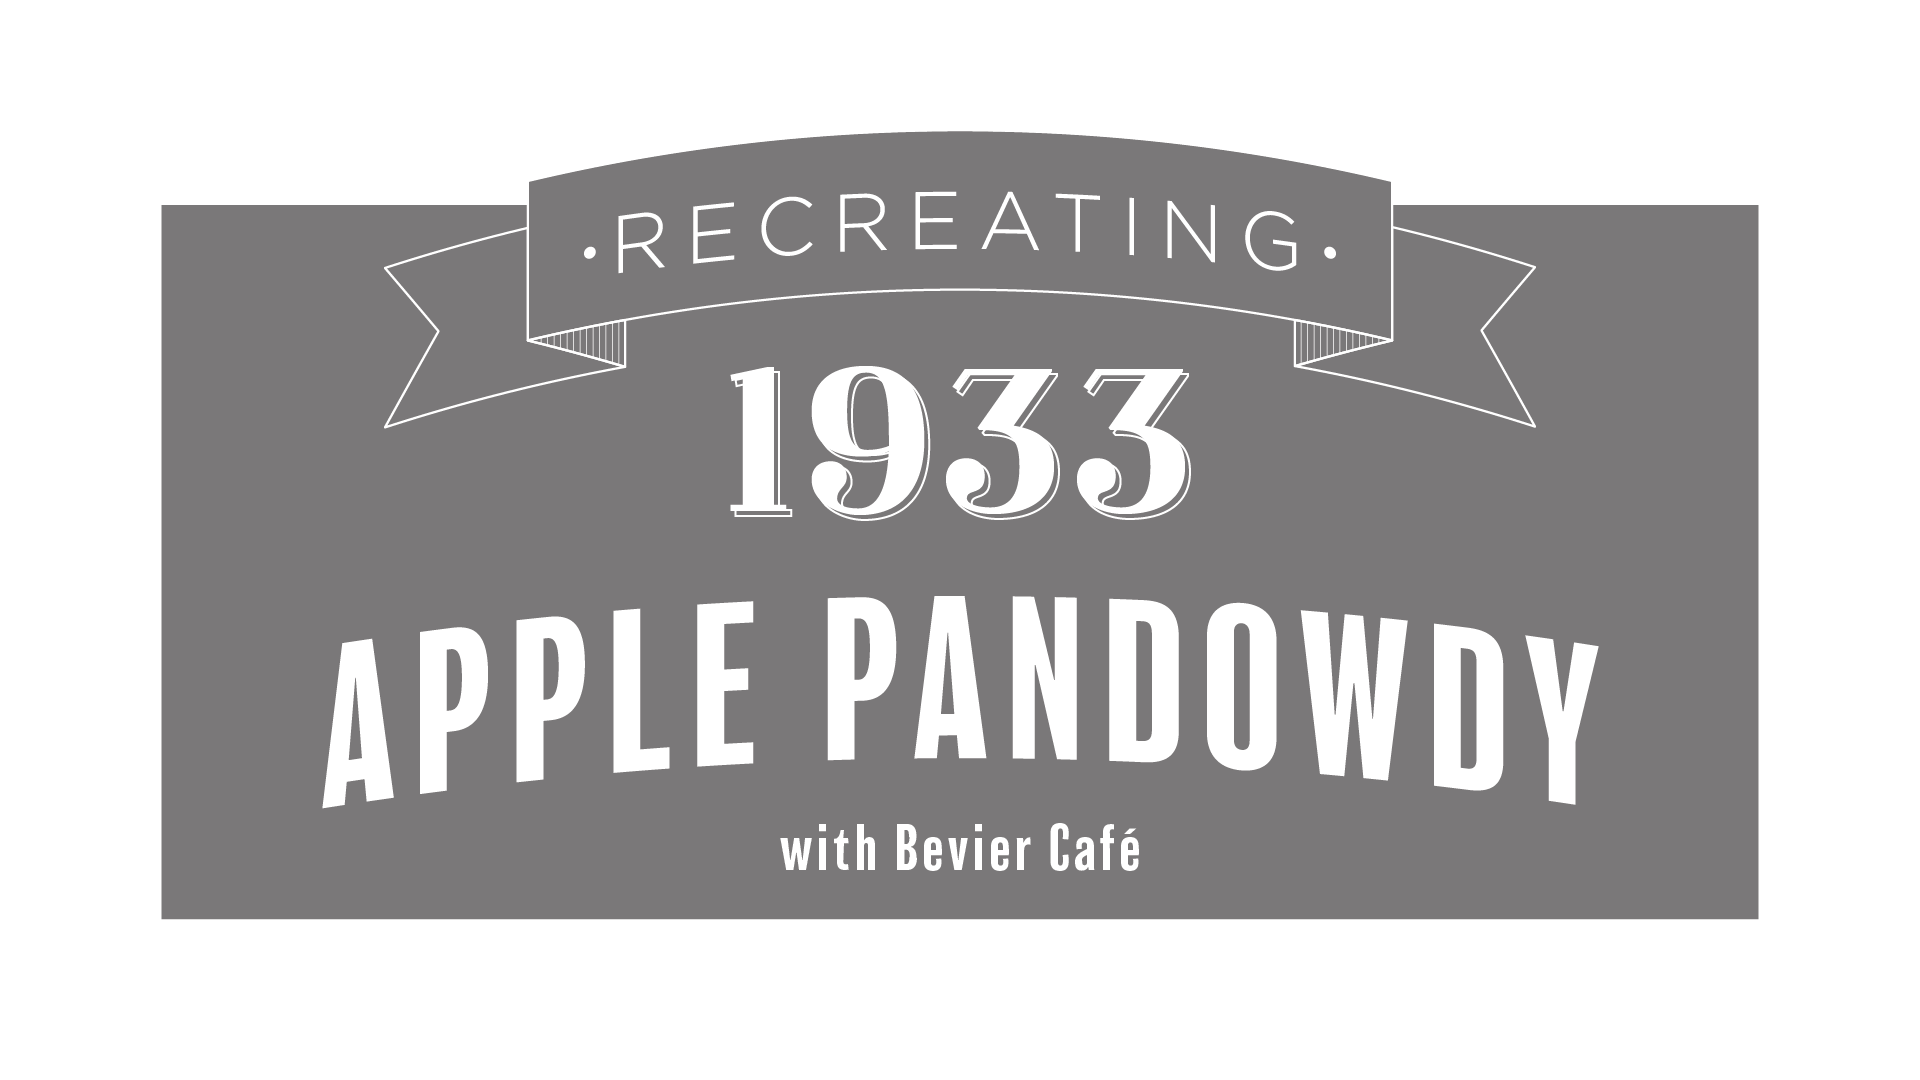 Recreating Apple Pandowdy